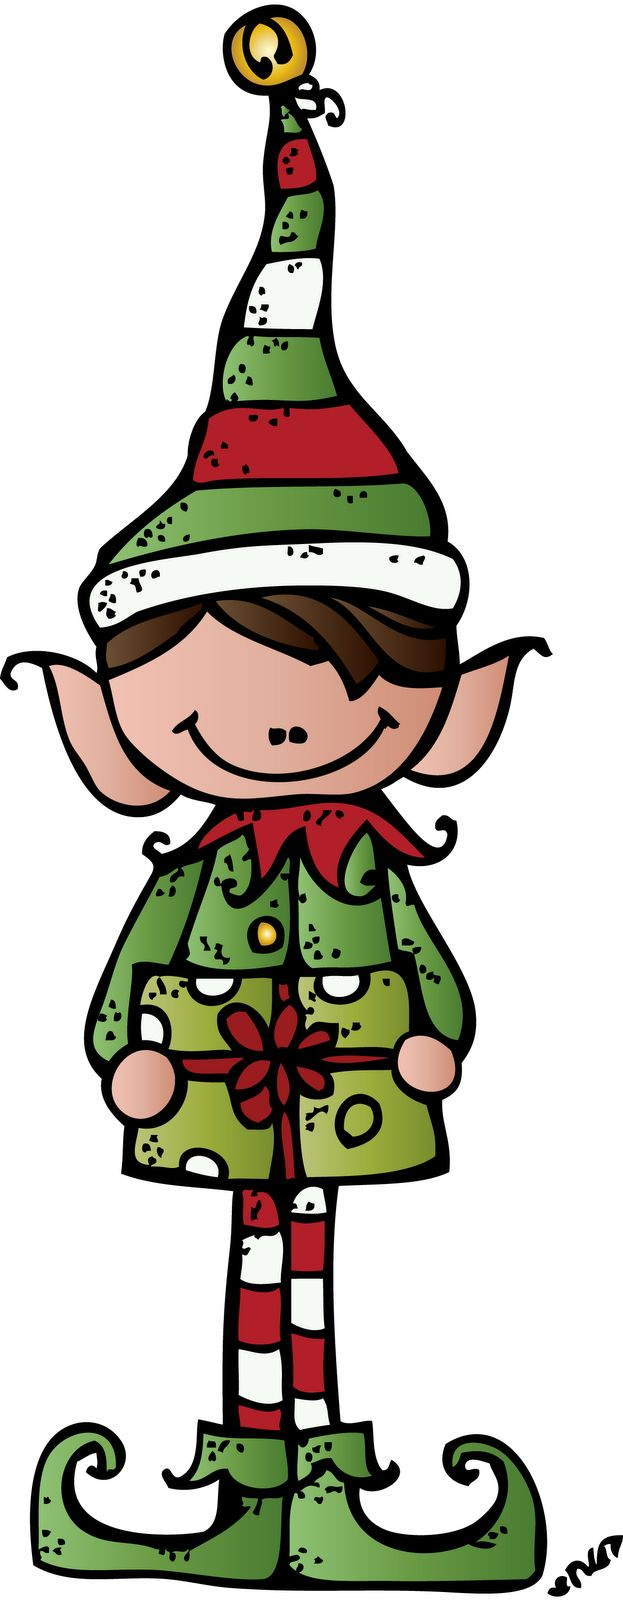 623x1600 1901 Best Clip Art Images Search, Artesanato And Doll